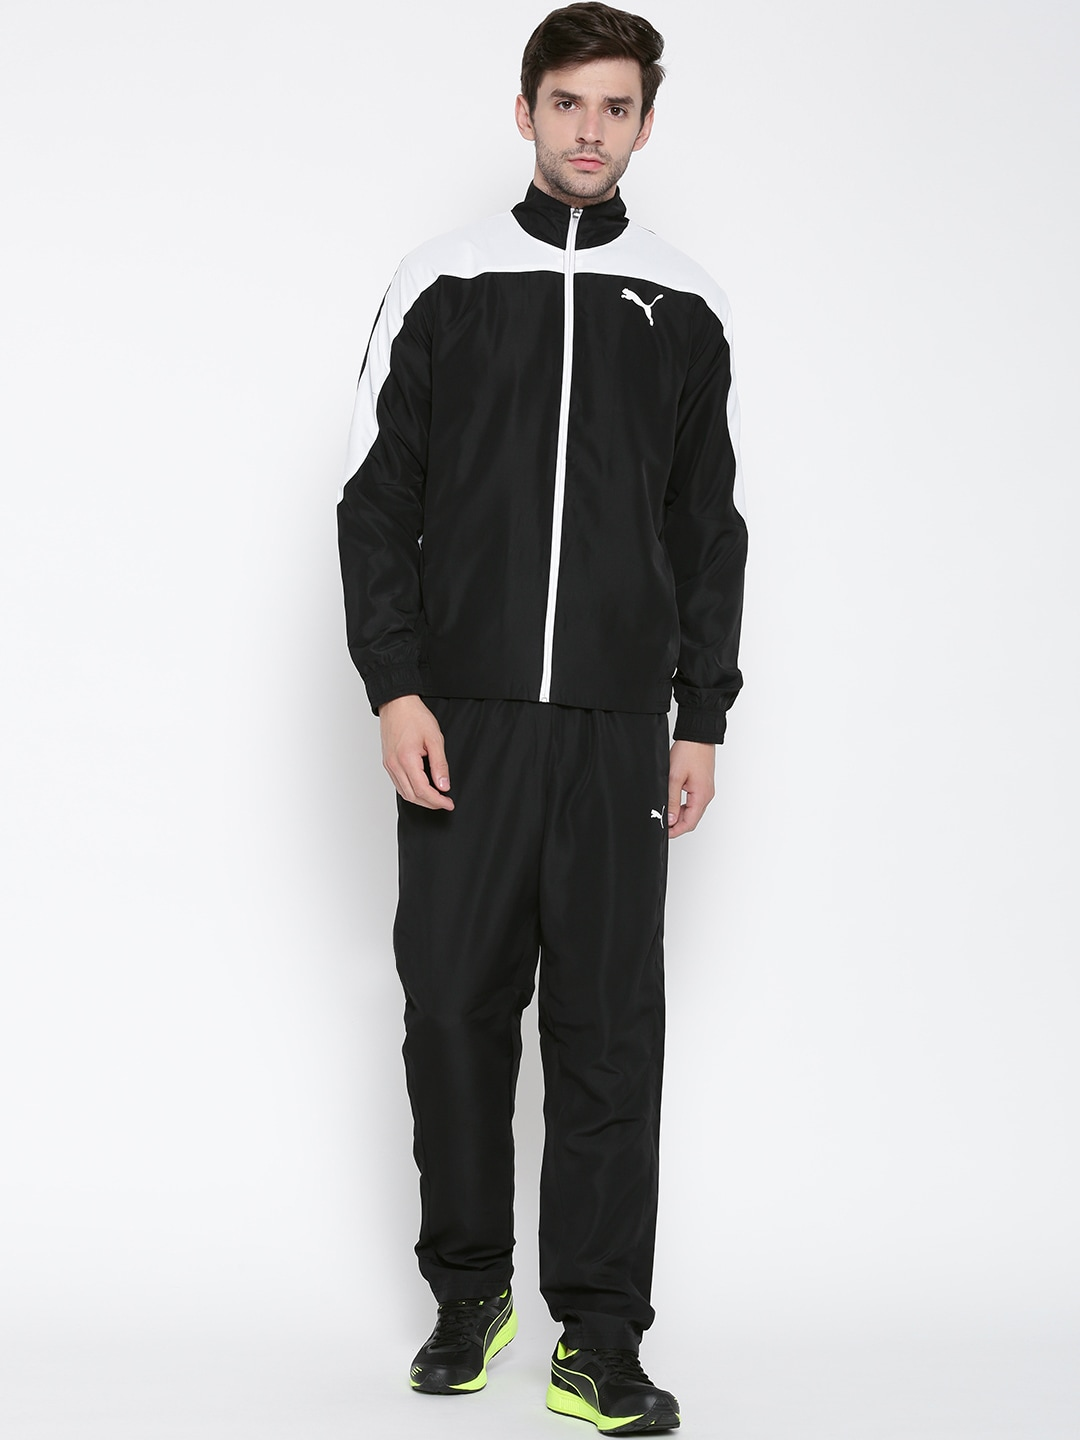 d4674750e293 Men s Puma Tracksuits - Buy Puma Tracksuits for Men Online in India